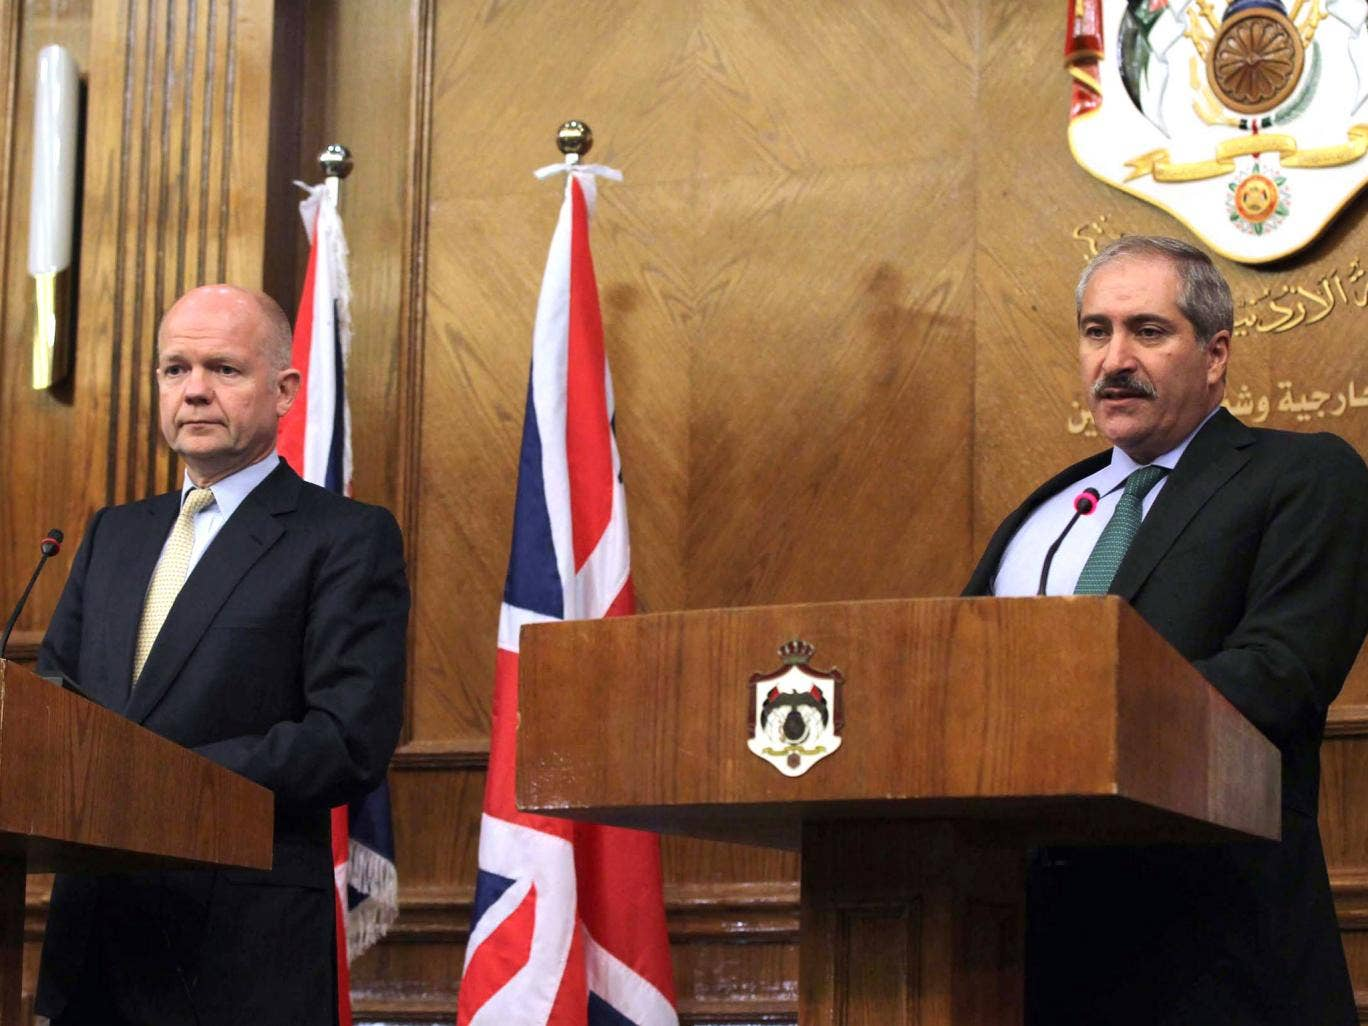 UK Foreign Secretary William Hague with Jordanian Foreign Minister Nasser Judeh